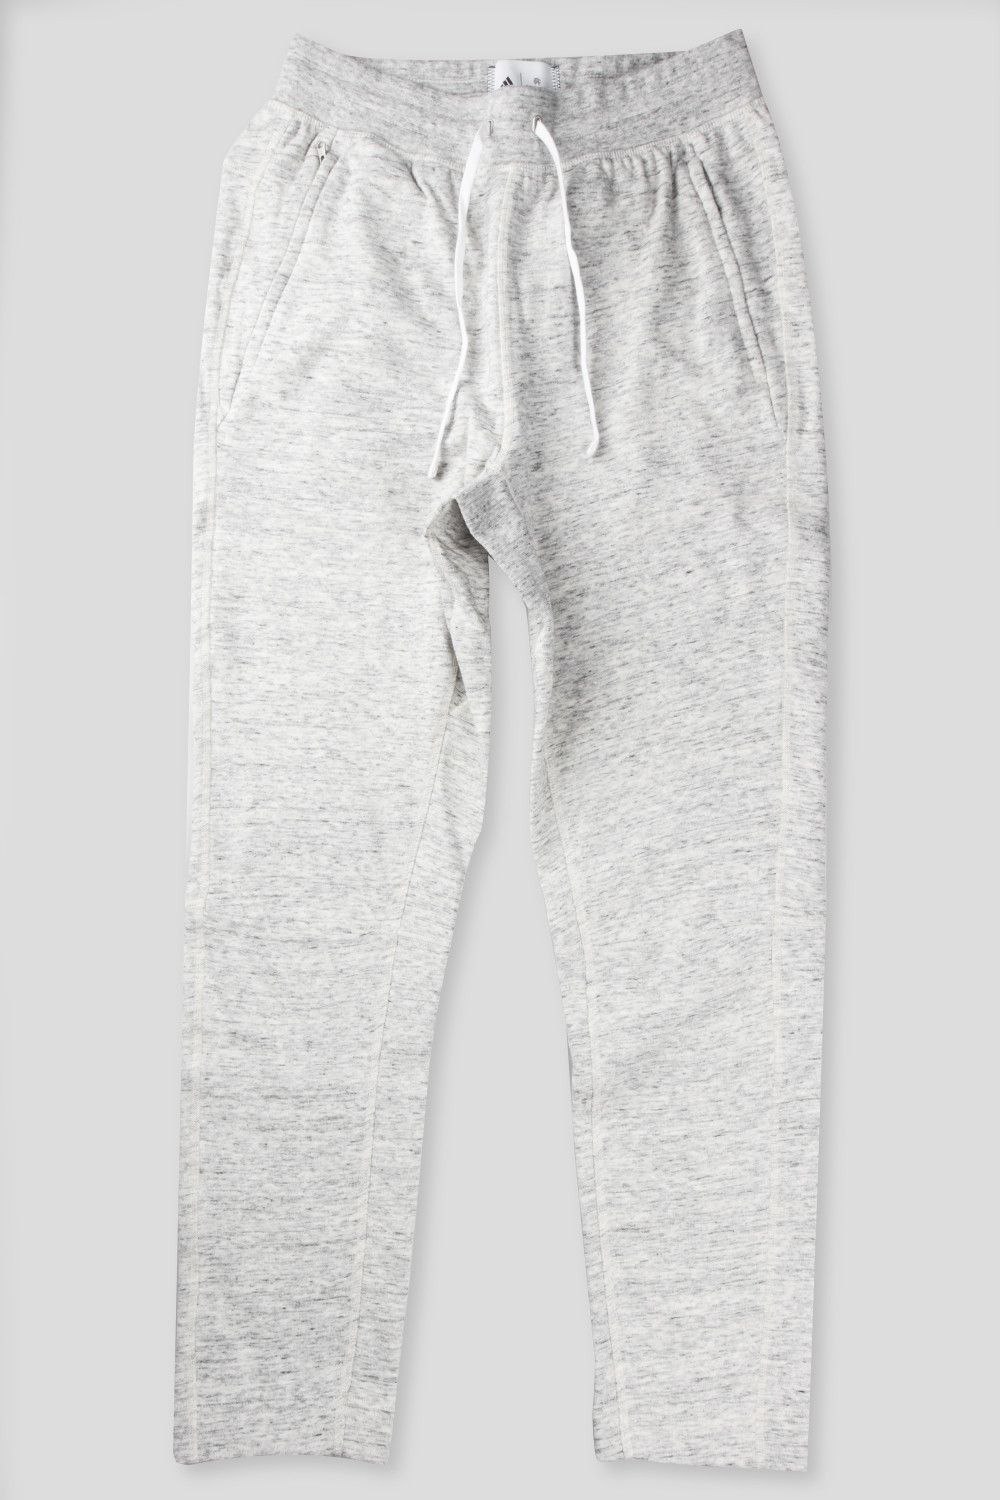 e68909d03a482 ADIDAS ATHLETICS X REIGNING CHAMP FLEECE PANT HEATHER